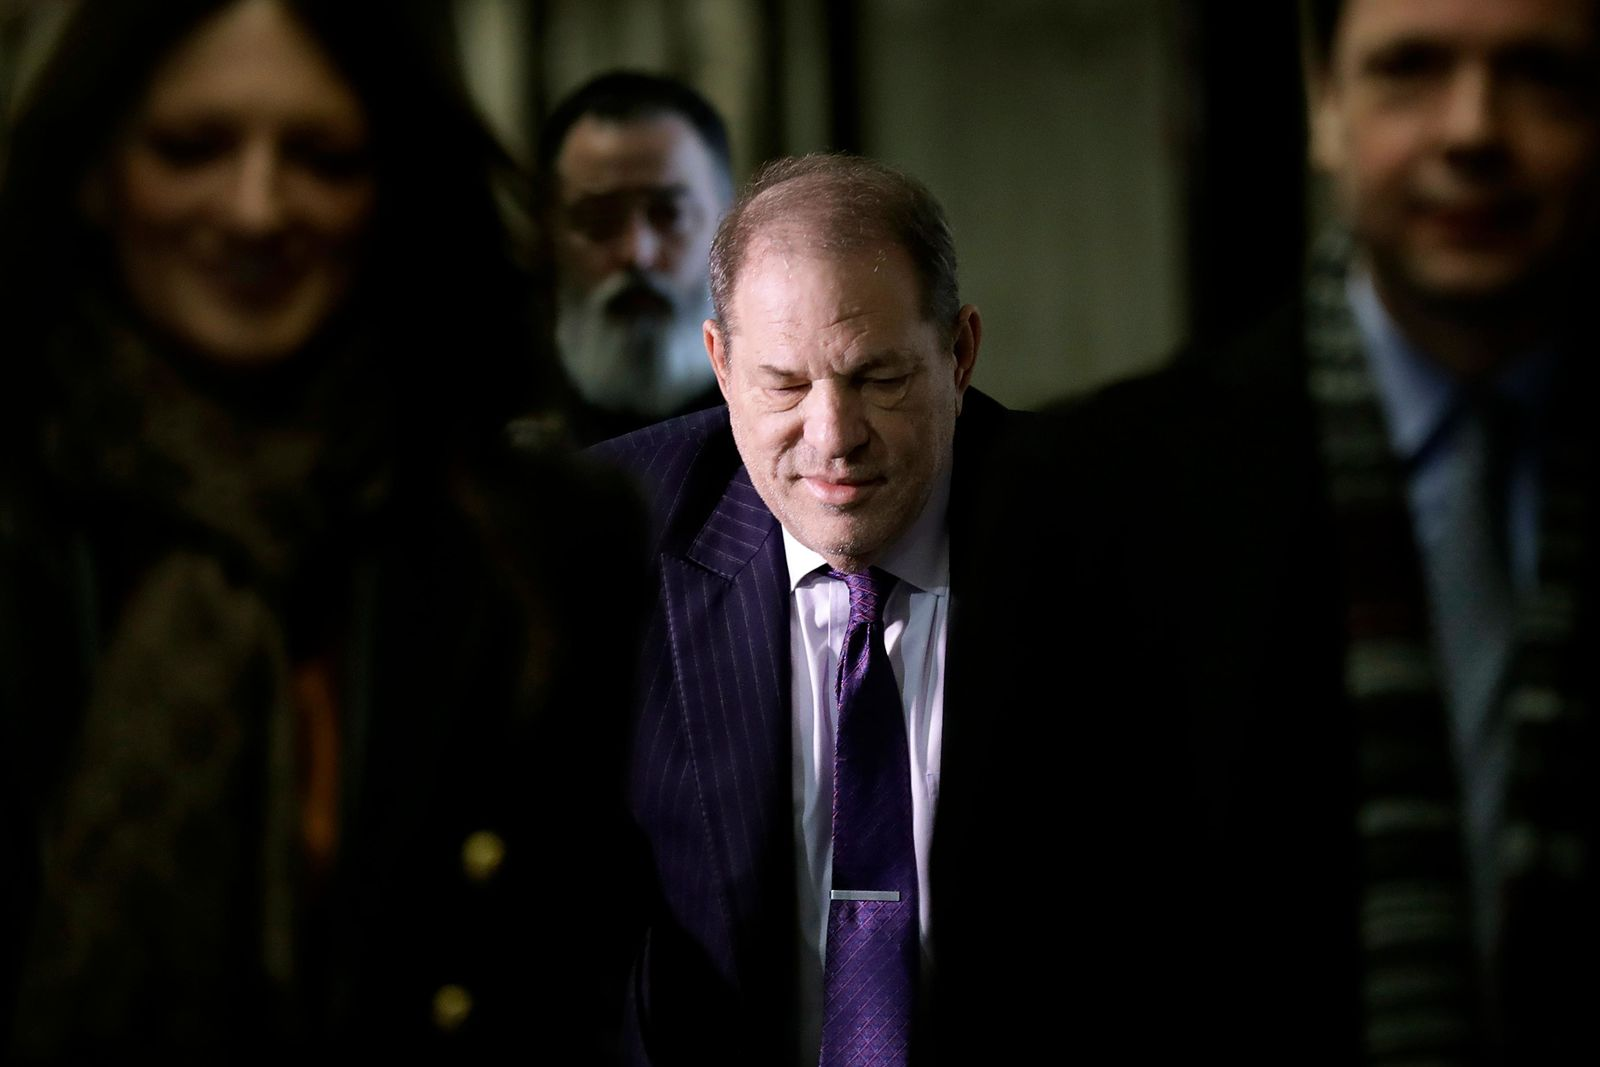 Harvey Weinstein arrives at a Manhattan courthouse as jury deliberations continue in his rape trial, Wednesday, Feb. 19, 2020, in New York. (AP Photo/Seth Wenig)